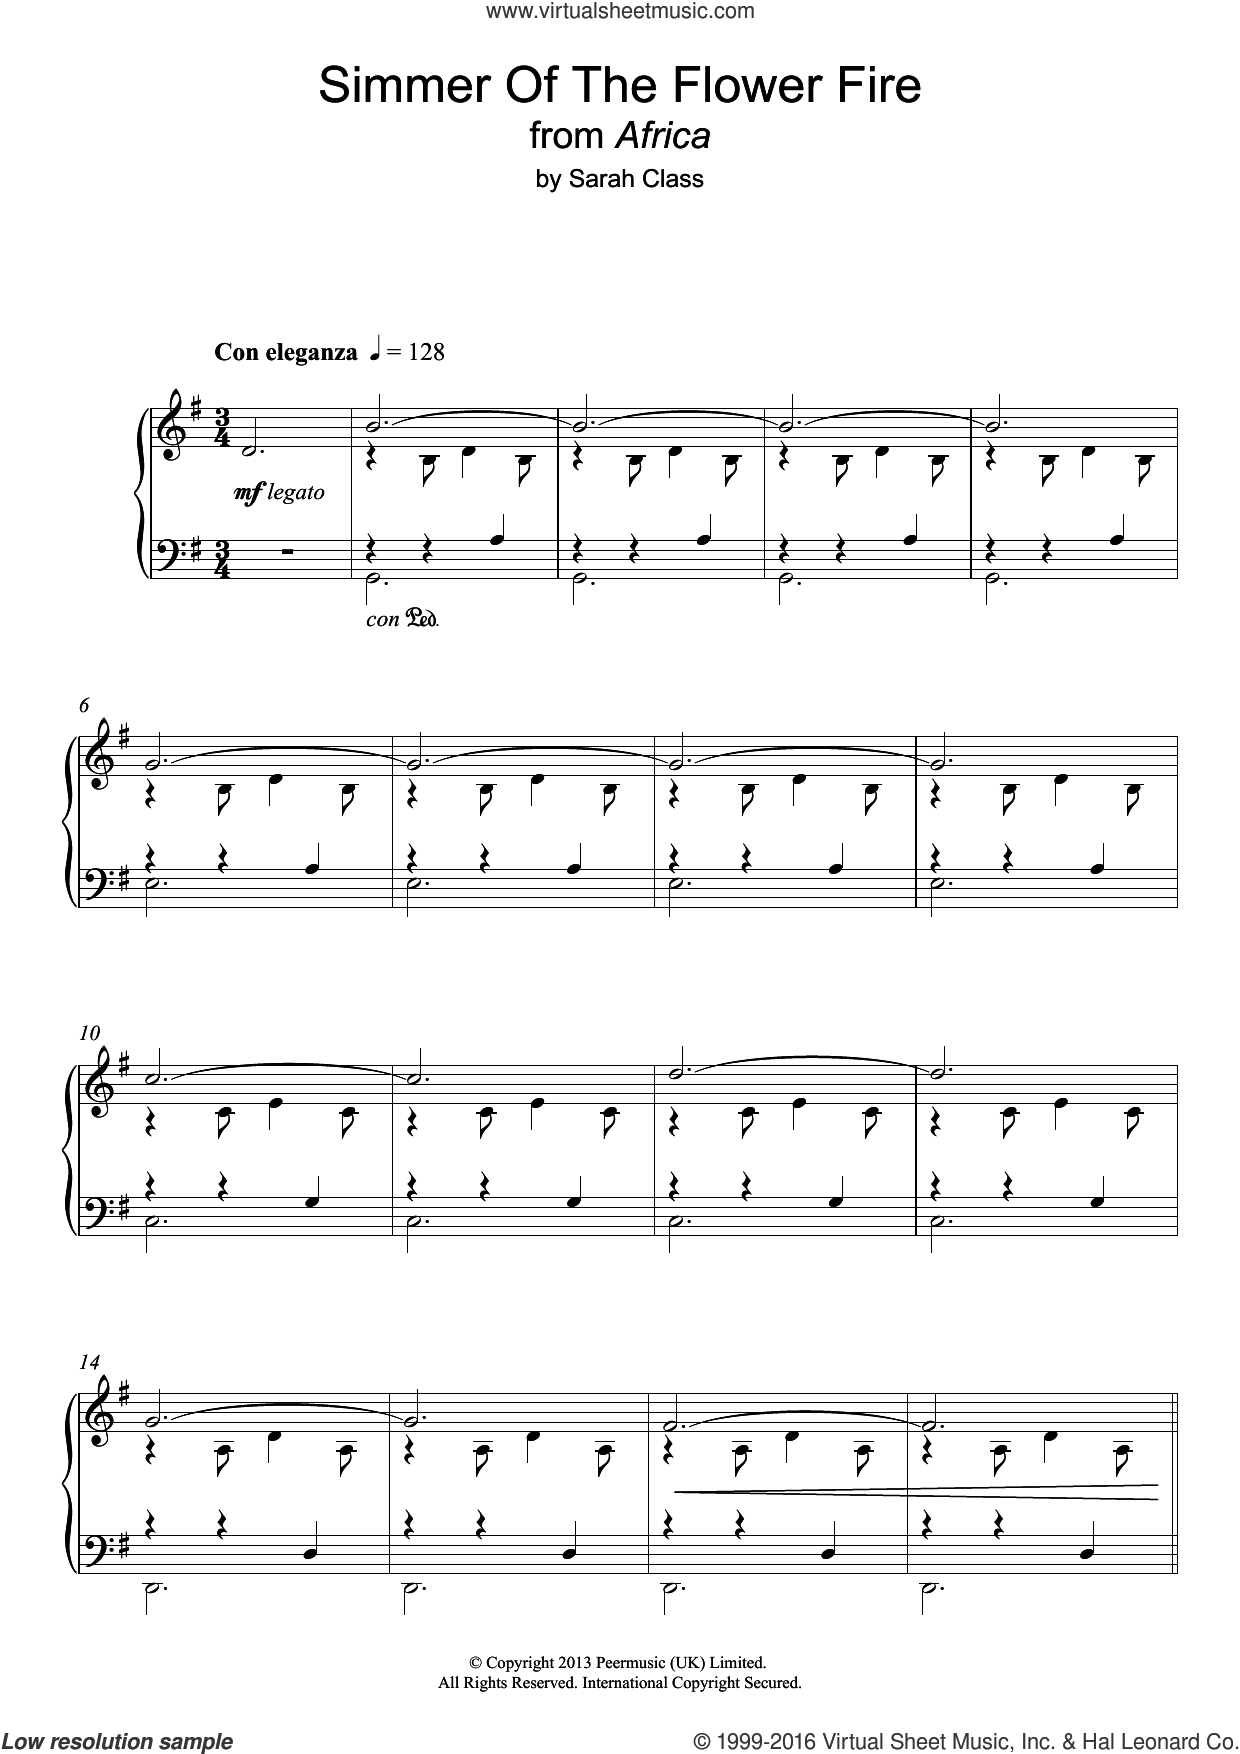 Simmer Of The Flower Fire sheet music for piano solo by Sarah Class. Score Image Preview.